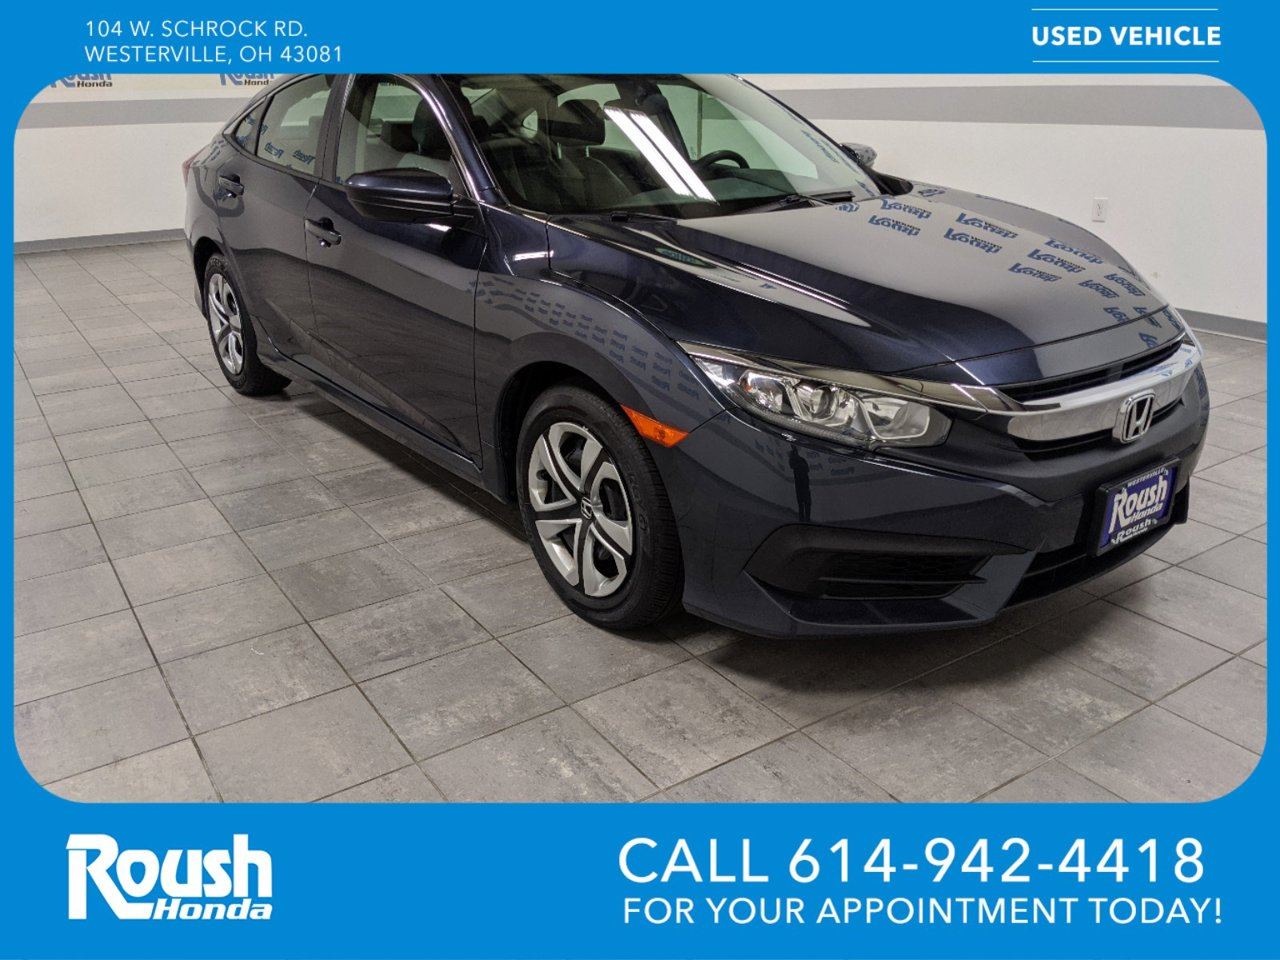 Used 2018 Honda Civic Sedan in Westerville, OH